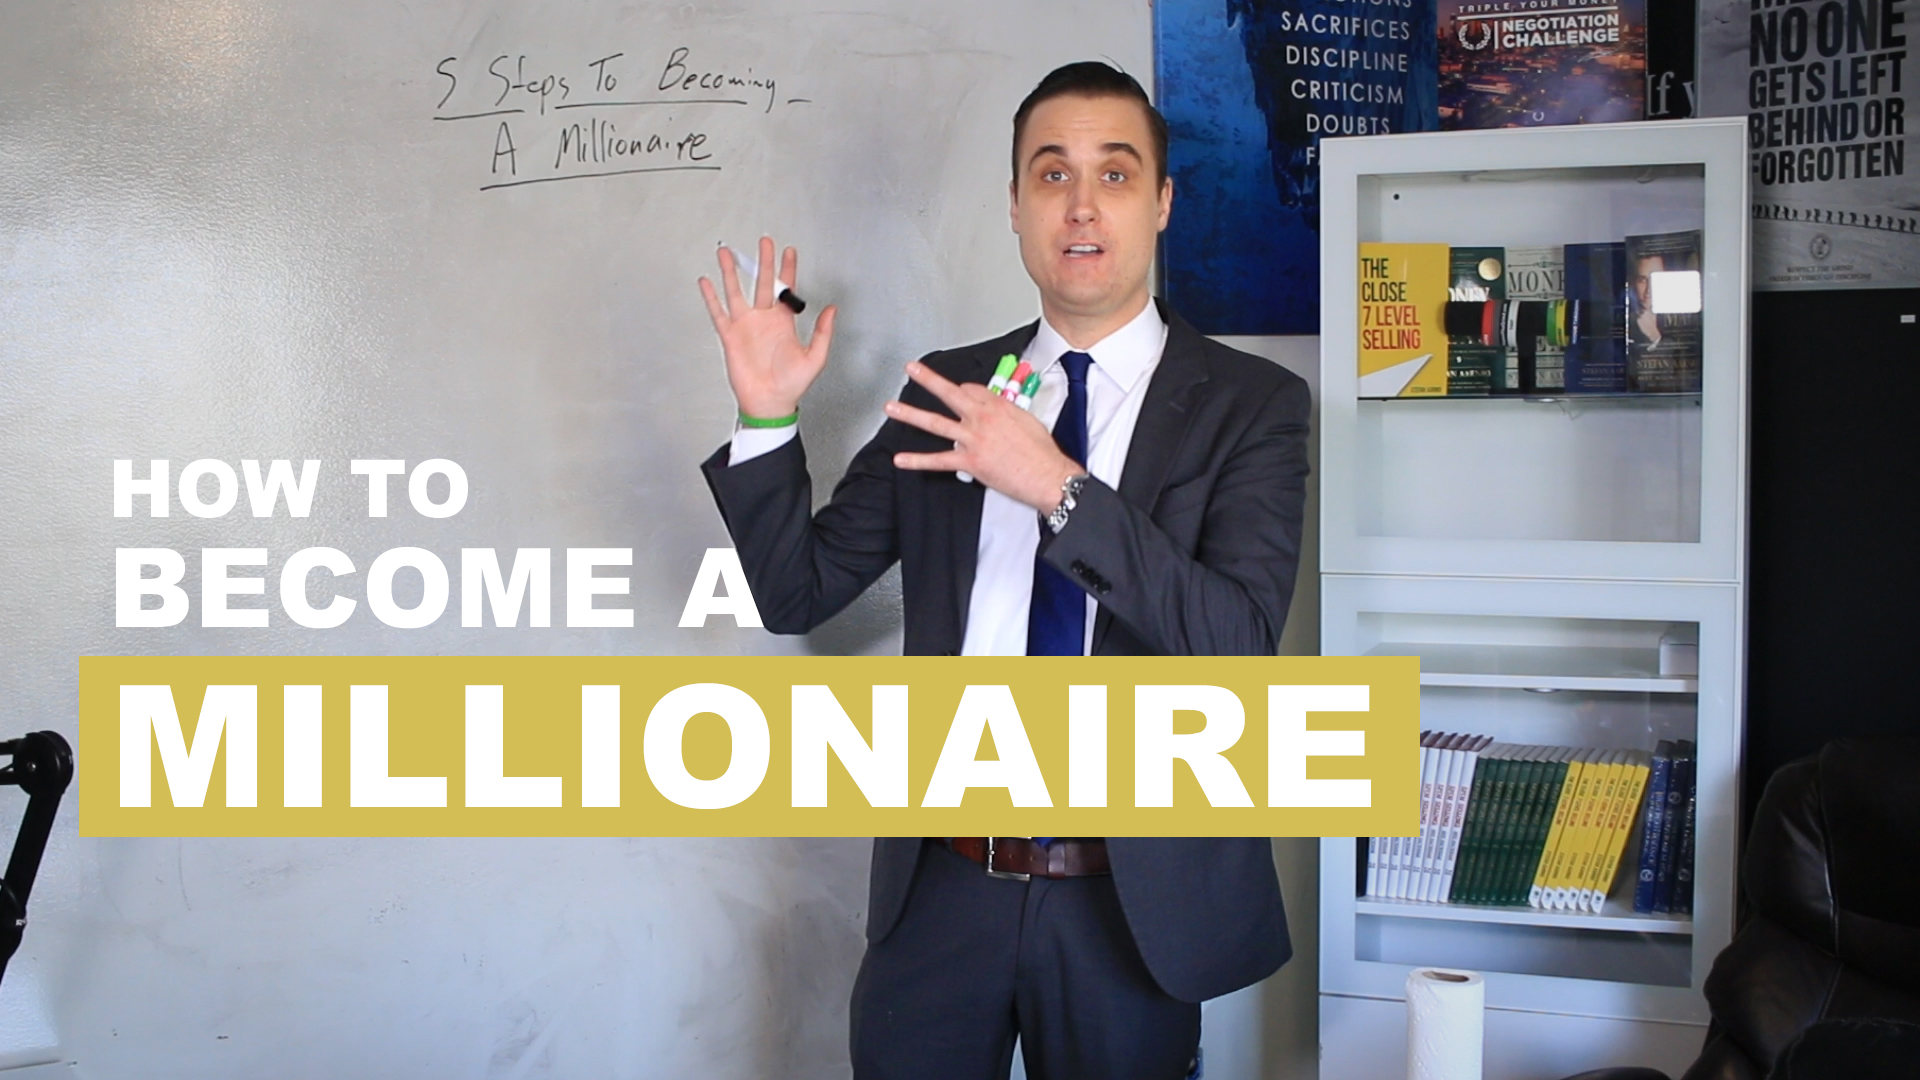 5 Steps To Becoming A Millionaire